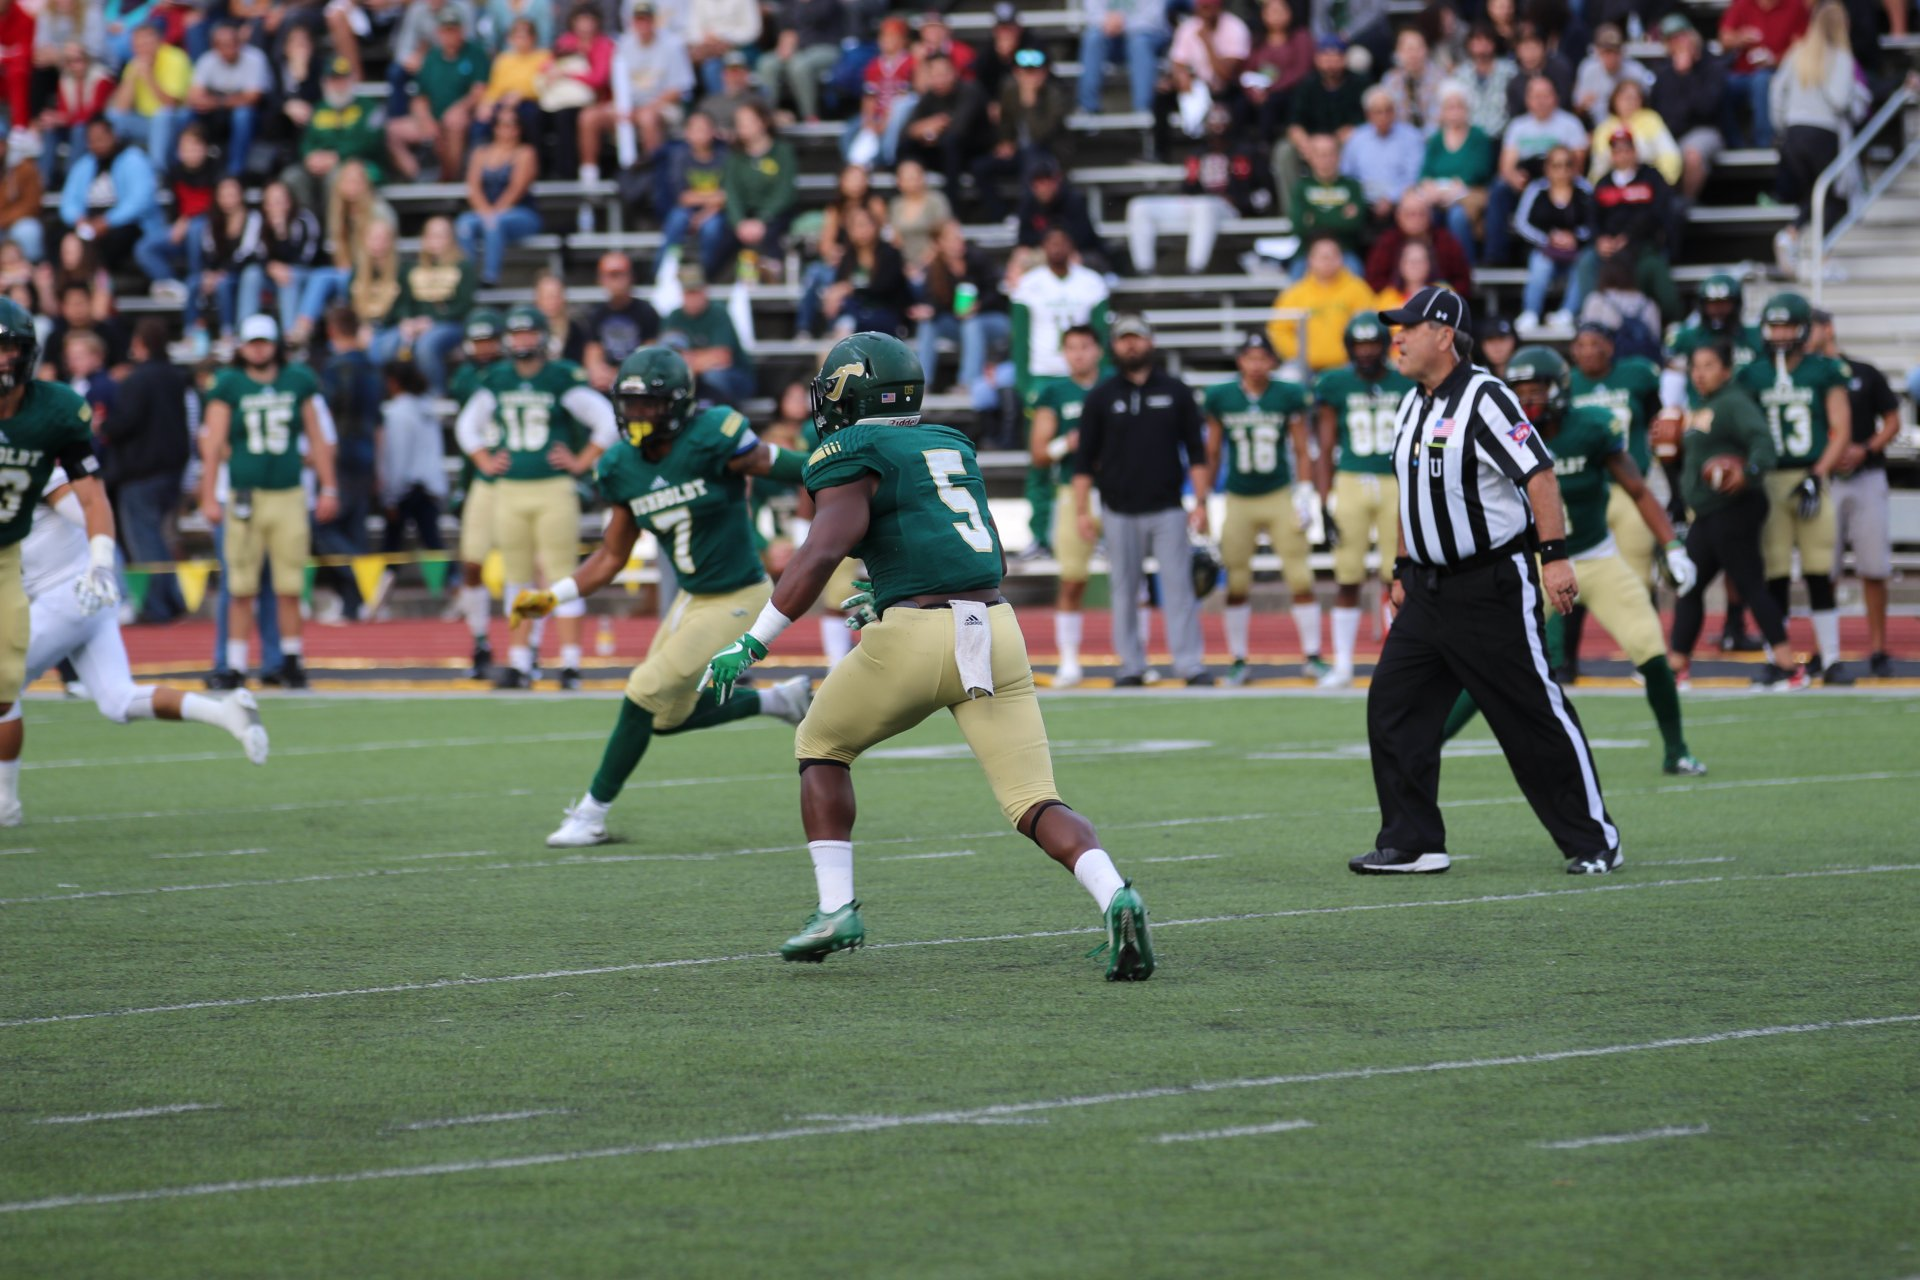 Humboldt State linebacker Demetrick Watts II in action as defense attempts to stop Western Oregon's drive down the field in a home game on September 22. | Photo by Walter Hackett